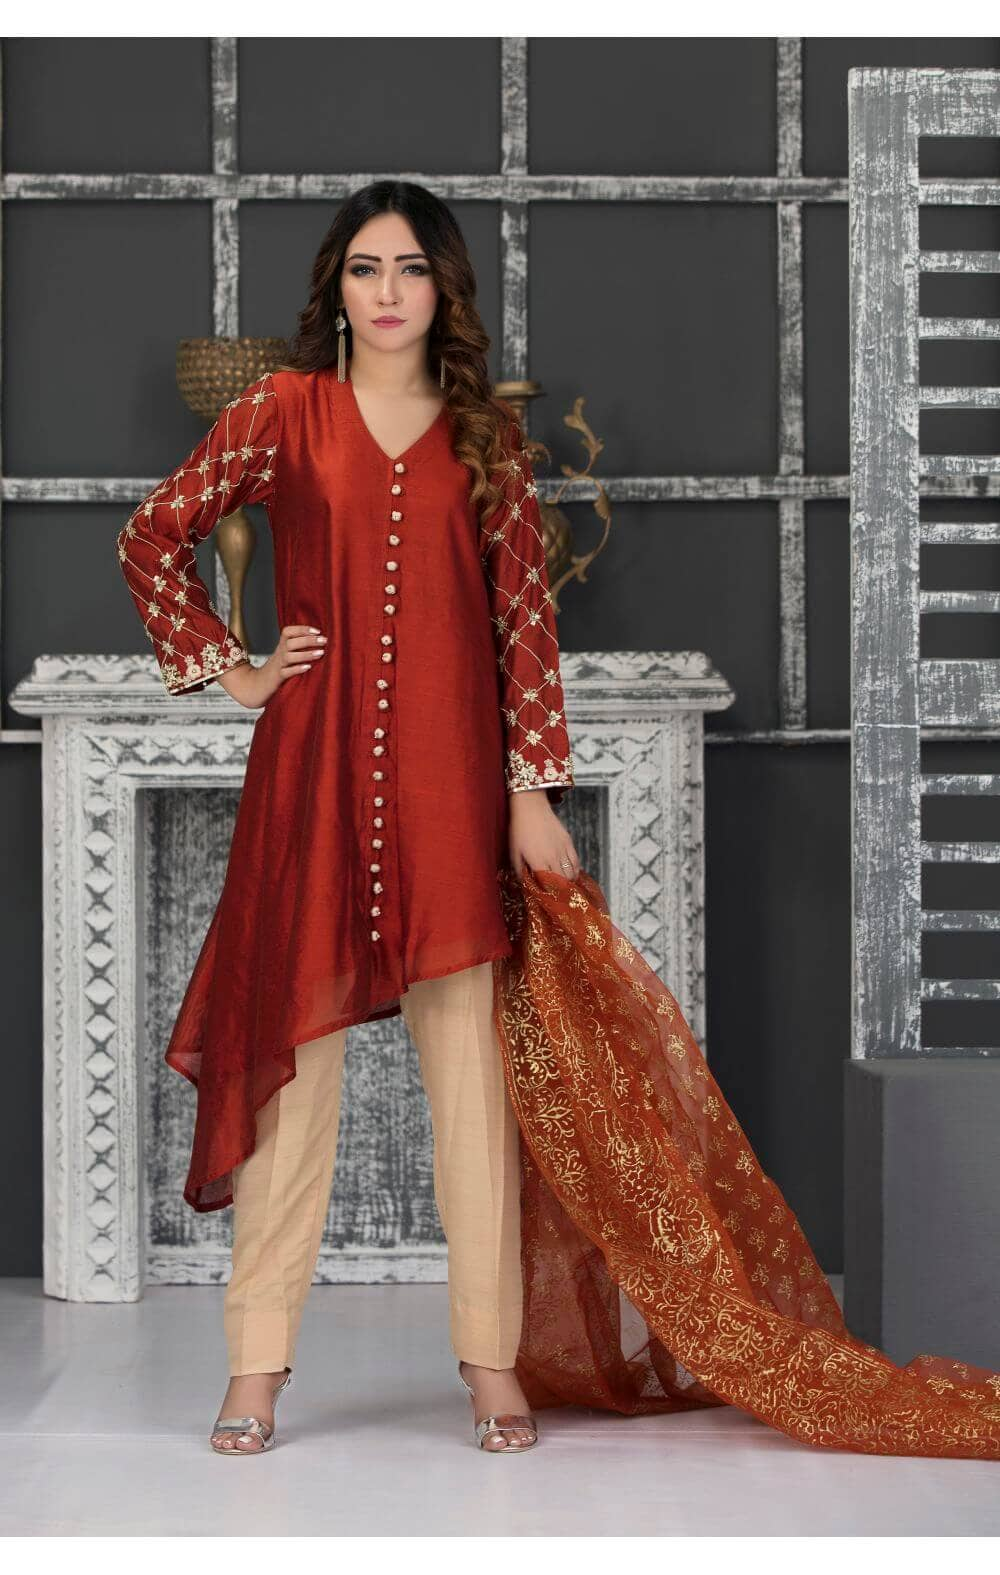 86dbabc4c0 RUST AND GOLD PARTY WEAR - SDS136 - Exclusive Online Boutique